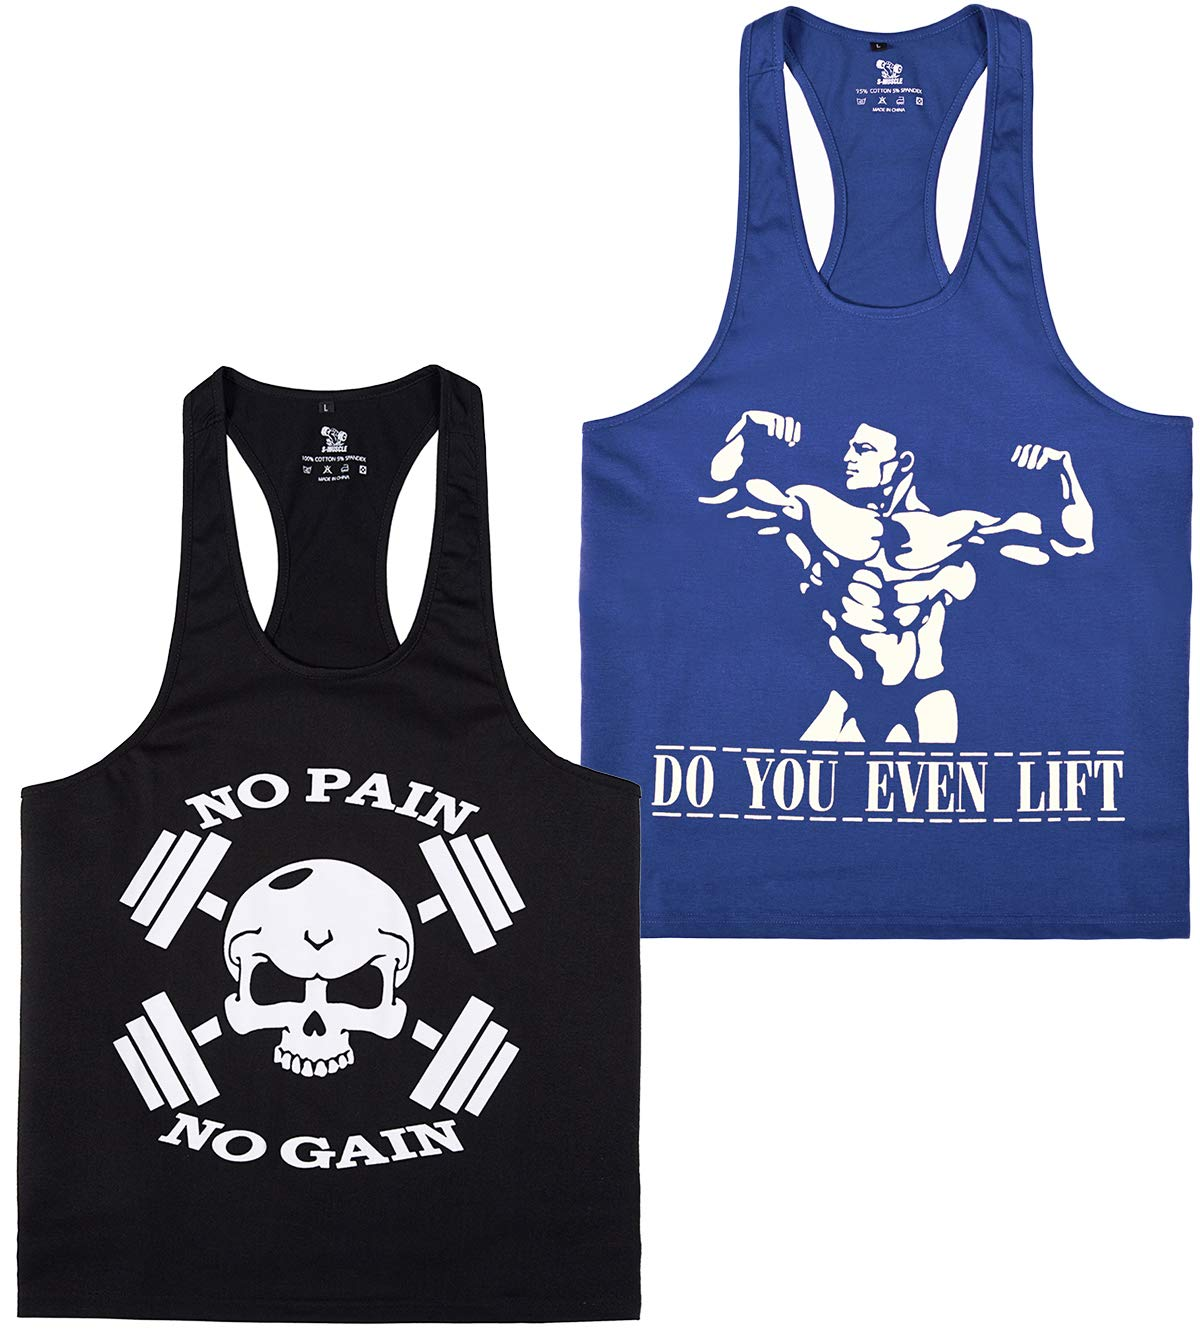 YSENTO Mens Stringer Tank Top Dri Fit Gym Workout Racerback Shirts